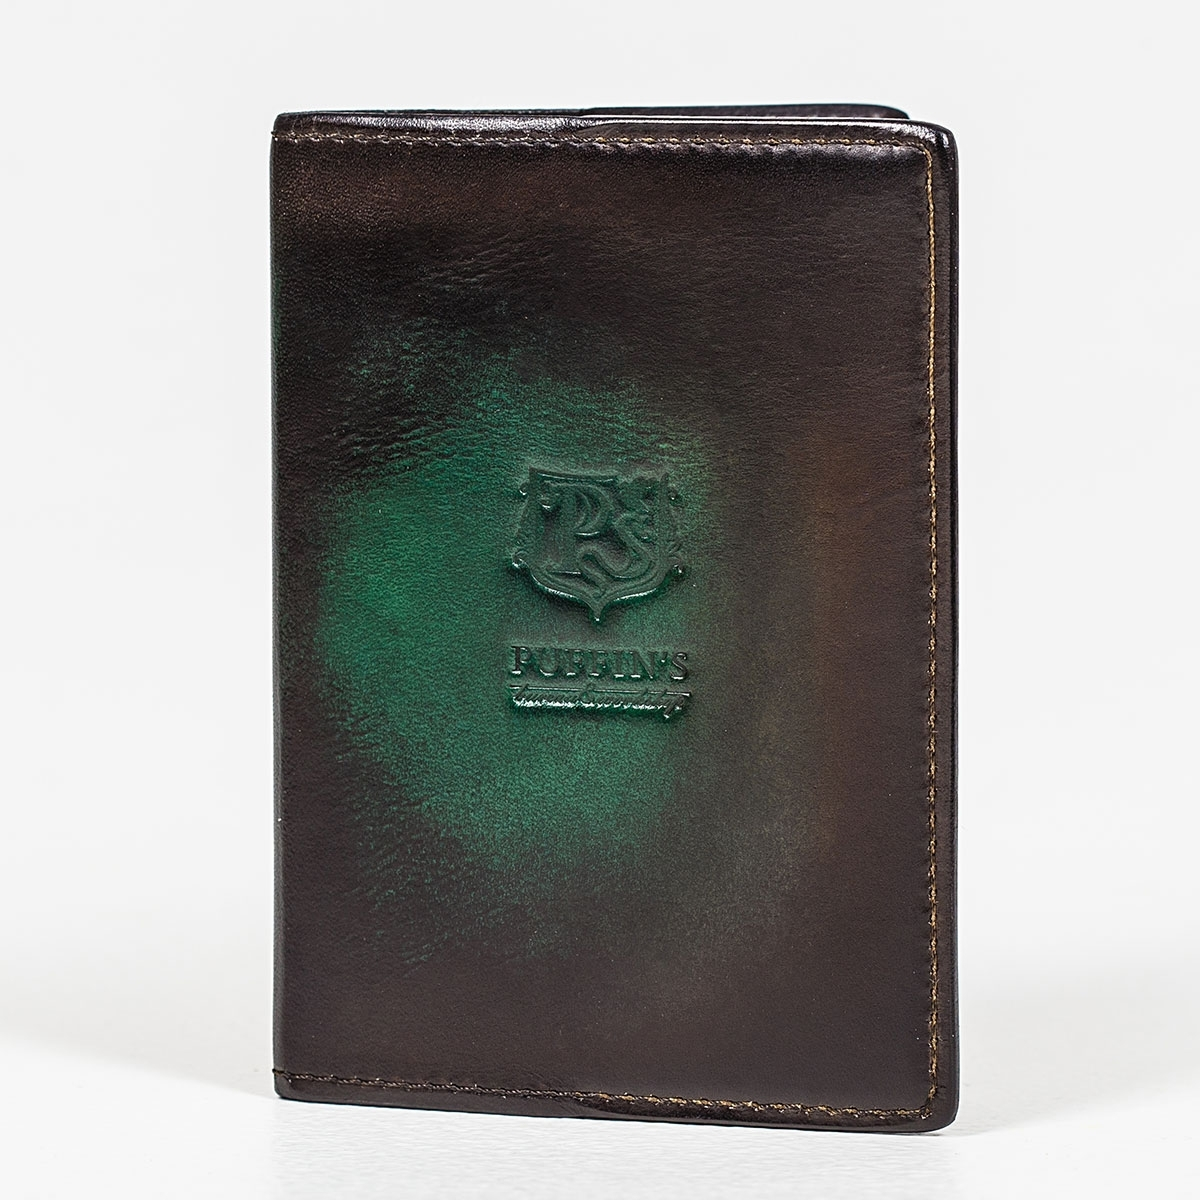 Passport cover CYNARA grassy green & chestnut